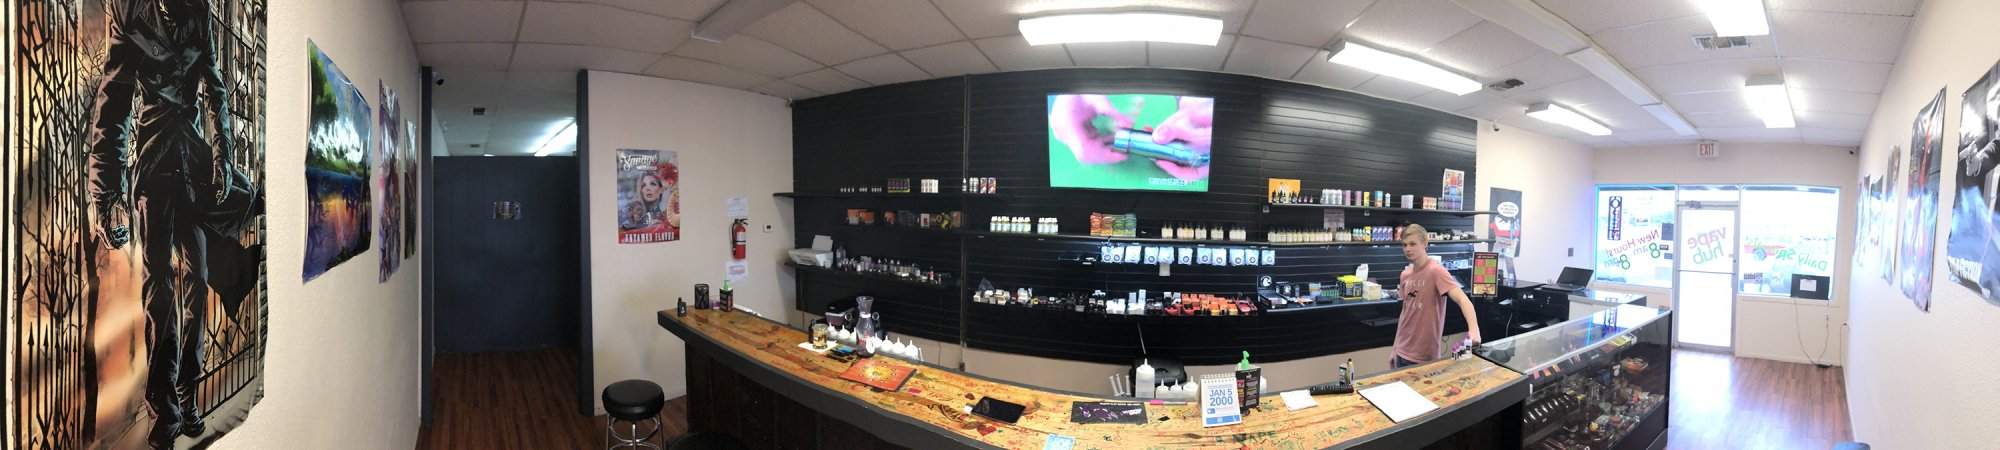 Sulphur Springs Vape Bar Wide Angle Shot